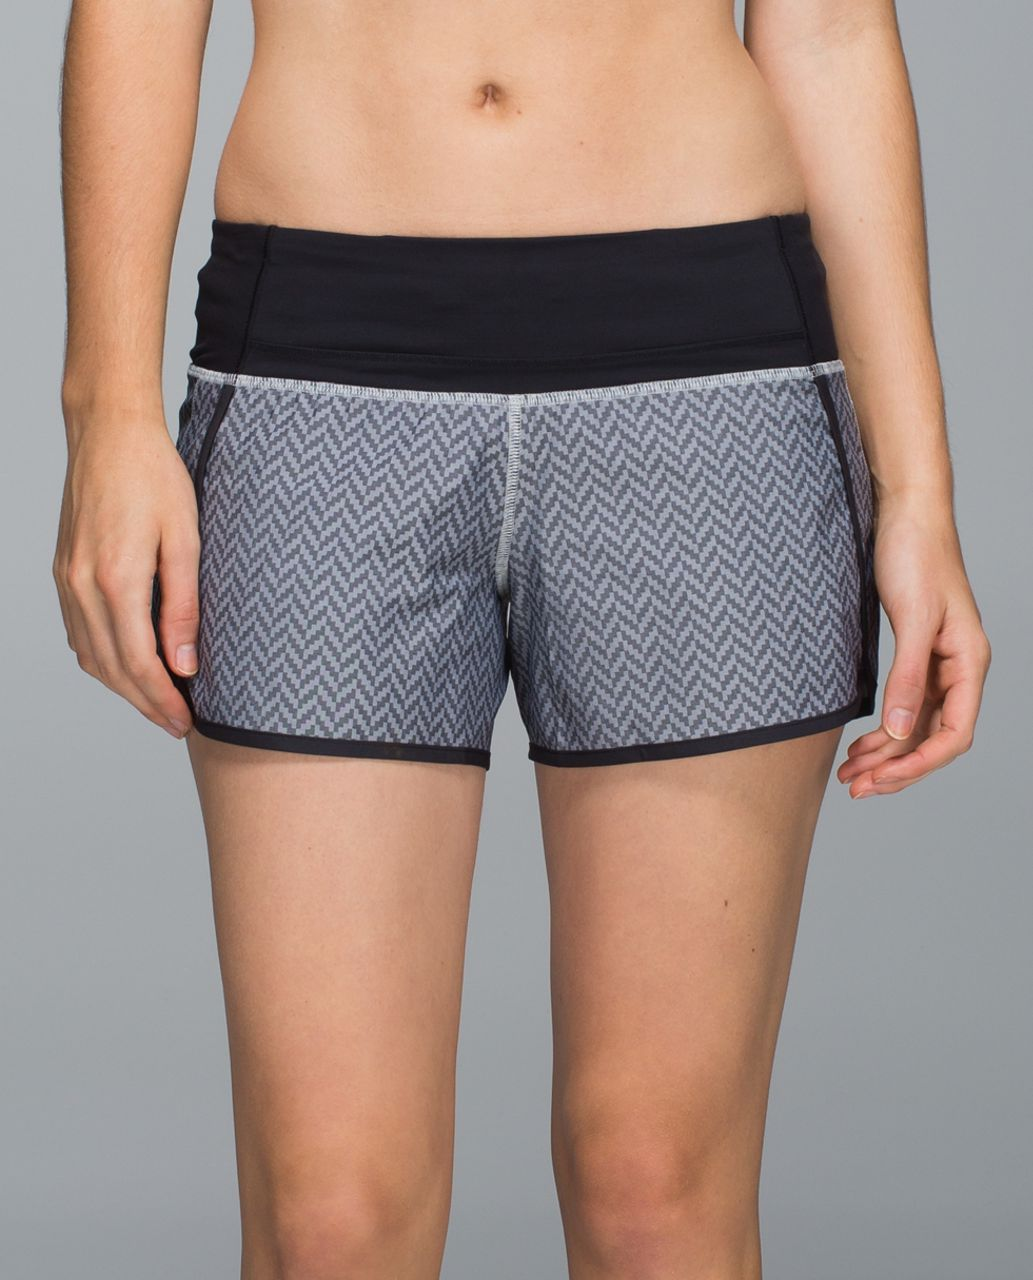 Lululemon Run Times Short *2-way Stretch - Giant Herringbone Swift Black White / Black